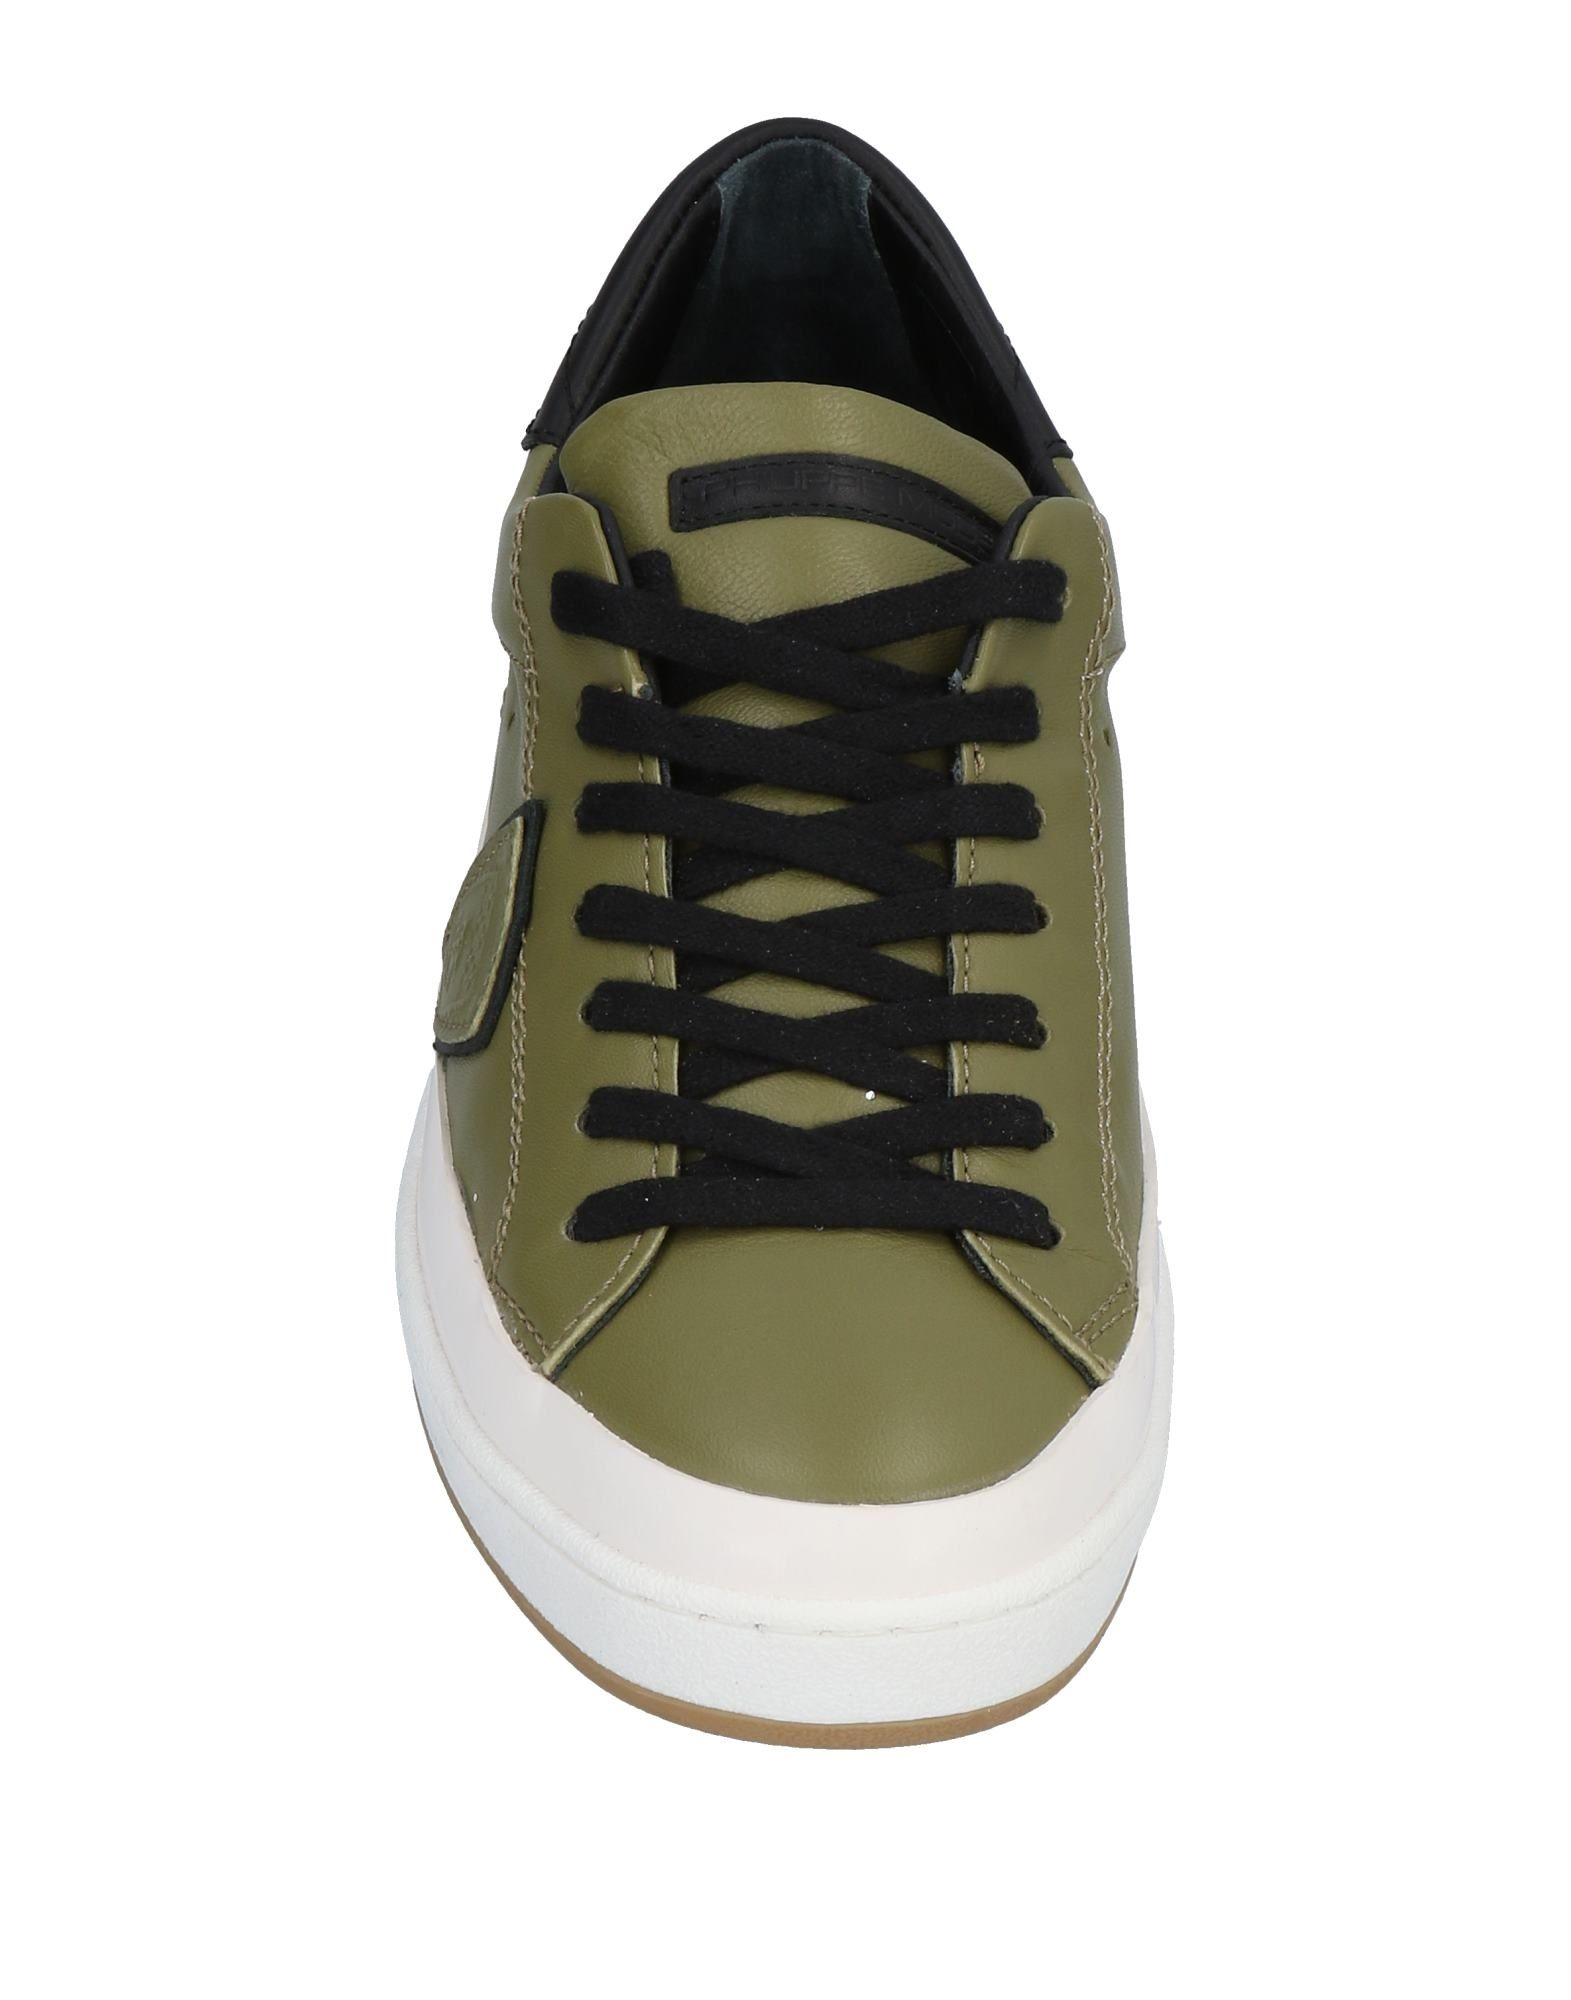 Philippe Model Model Model Sneakers - Men Philippe Model Sneakers online on  United Kingdom - 11480711WG 019e7d